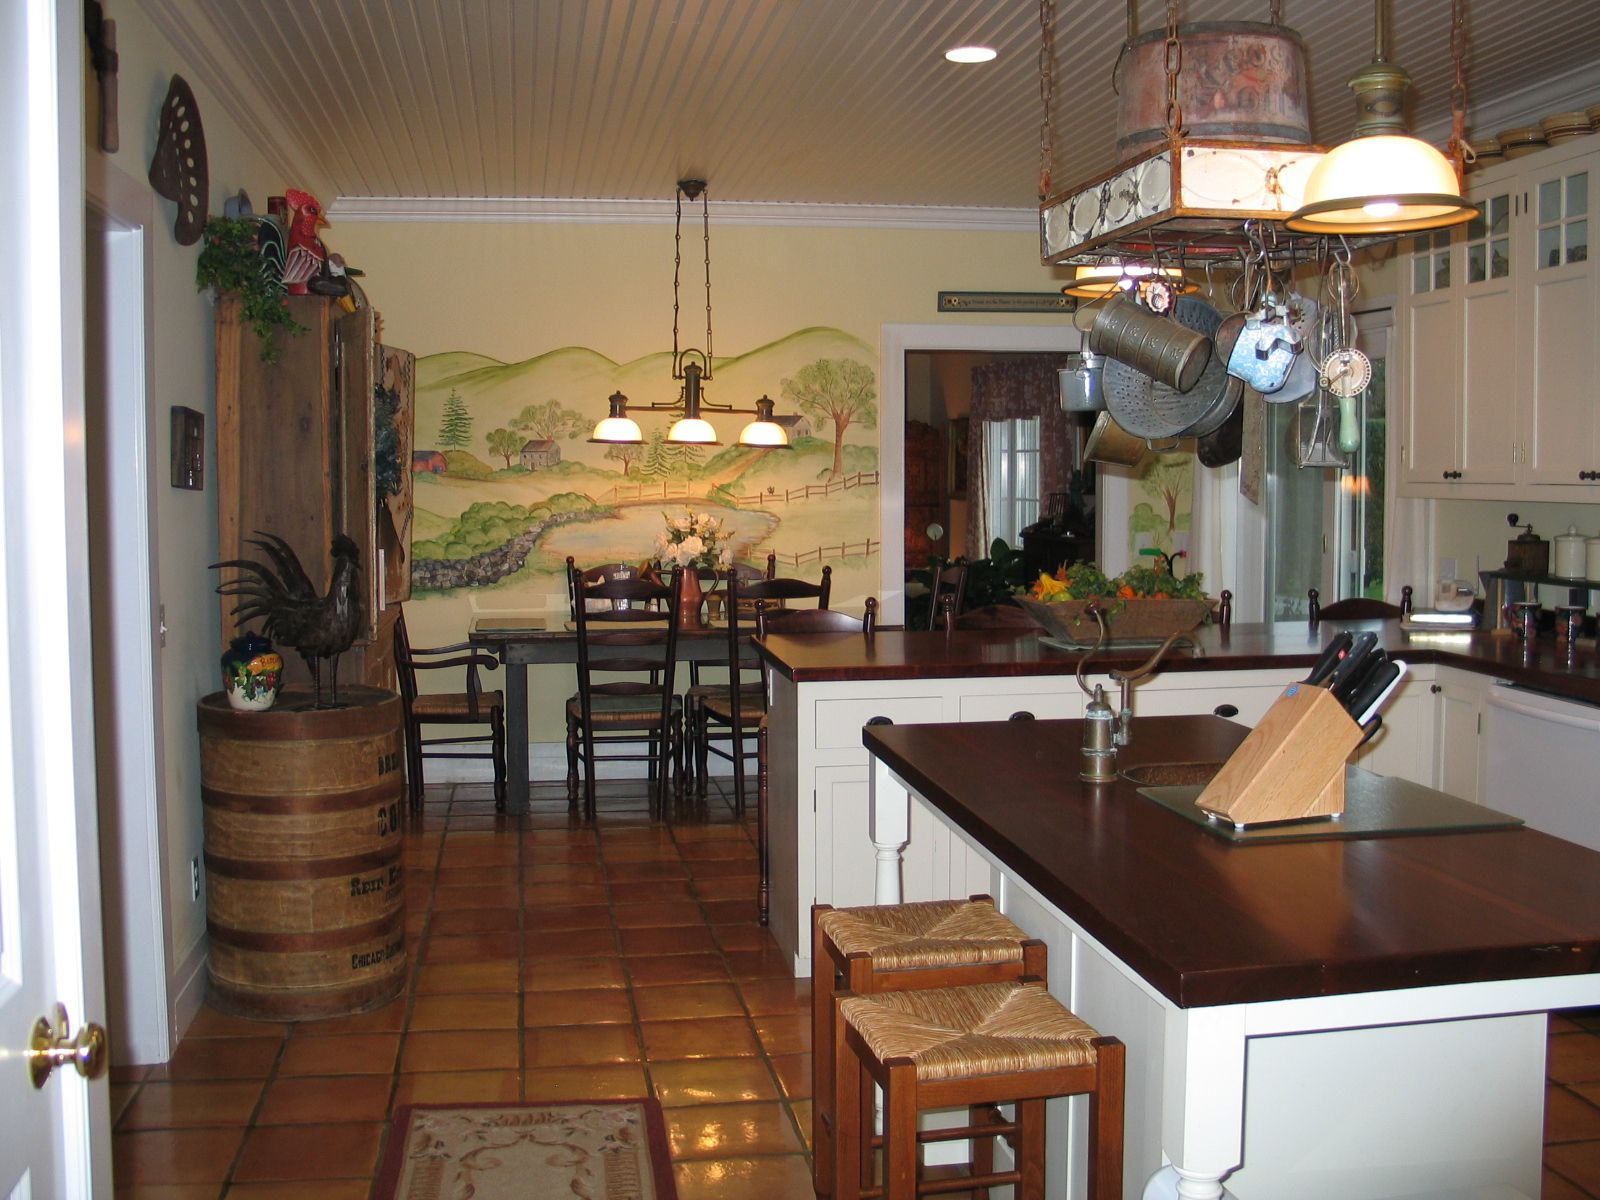 country kitchen with mahogany countertops, teracotta floor